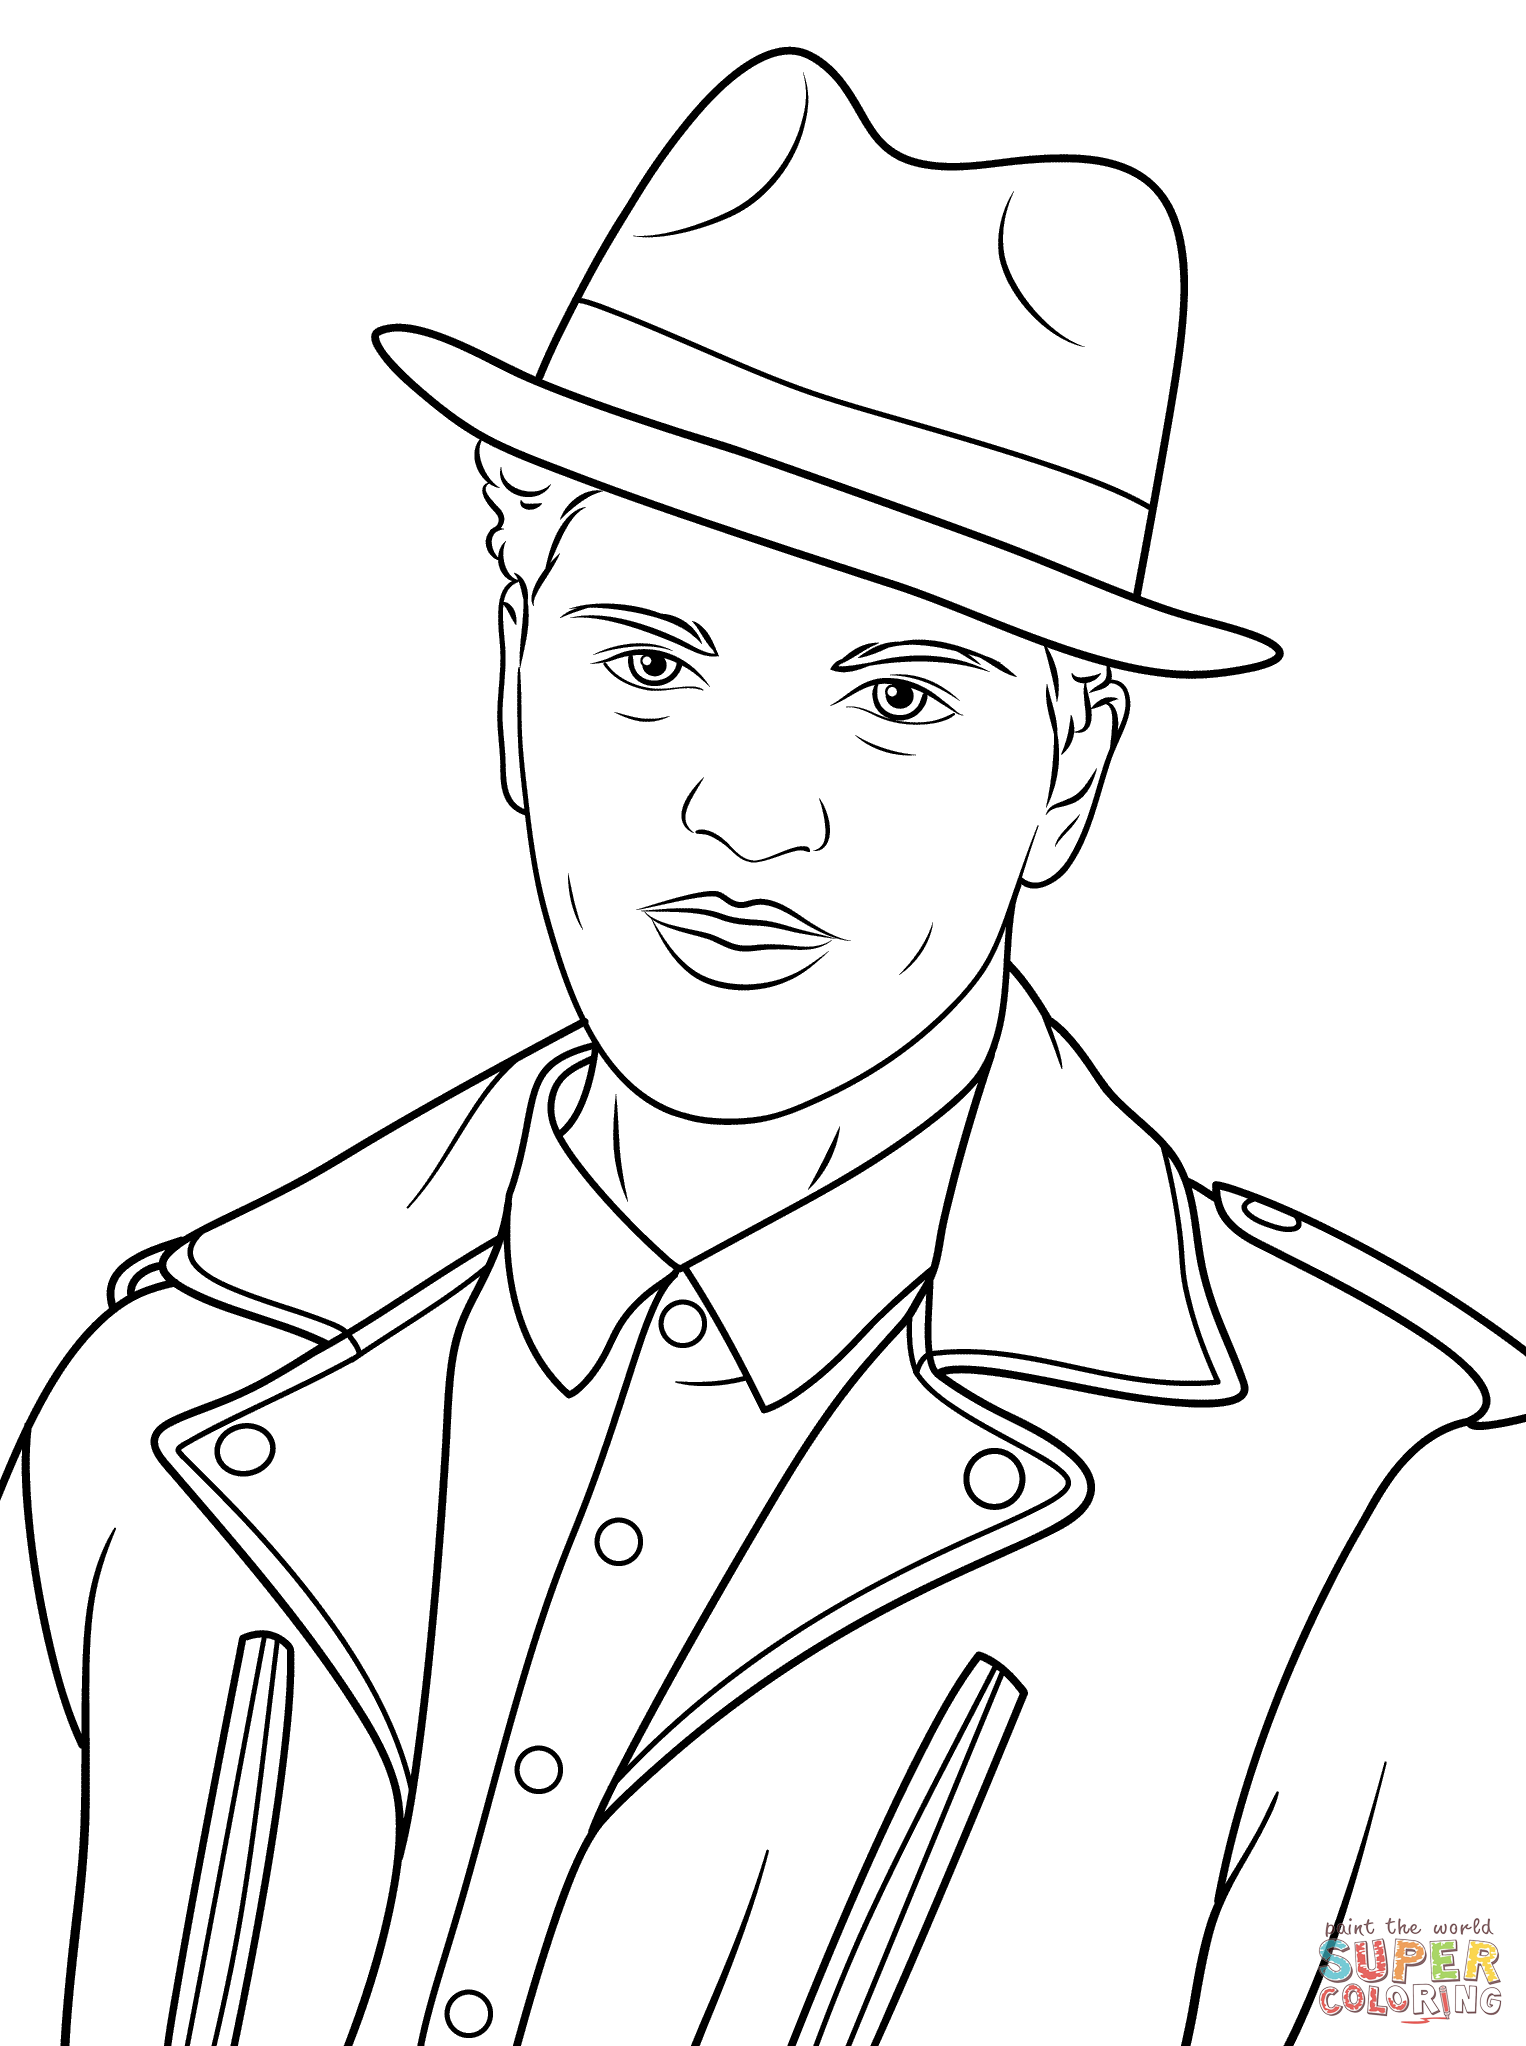 Bruno Mars Coloring Page Free Printable Coloring Pages